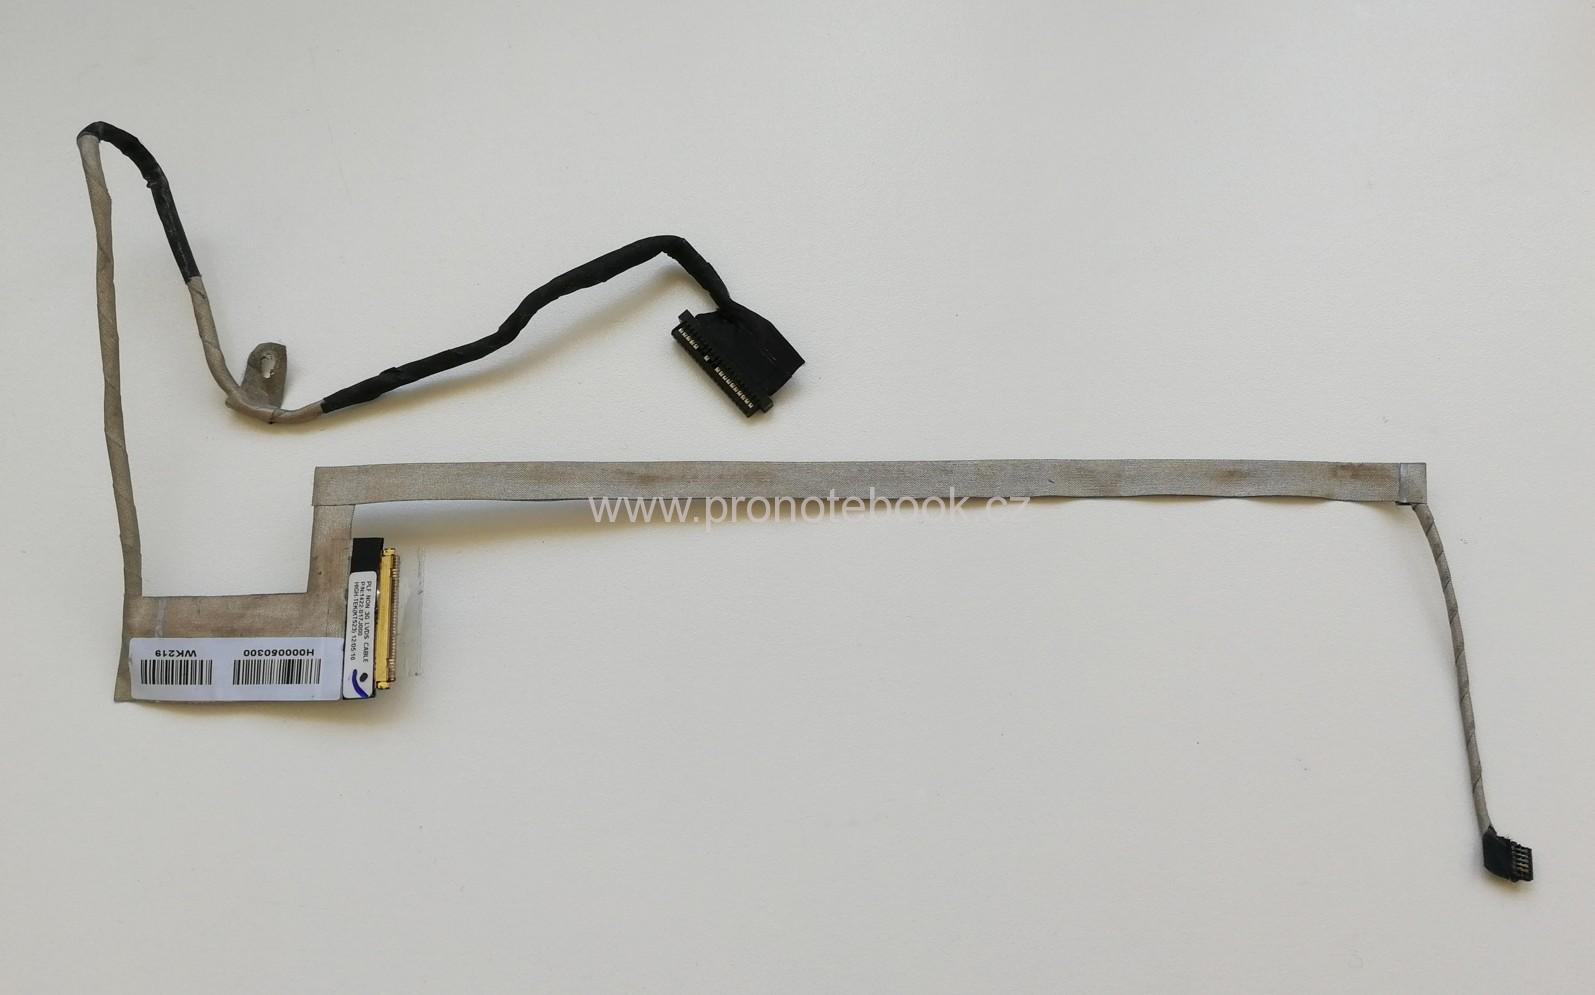 Toshiba L850 LVDS LCD kabel H000050300, 1422-017J000 NON 3G